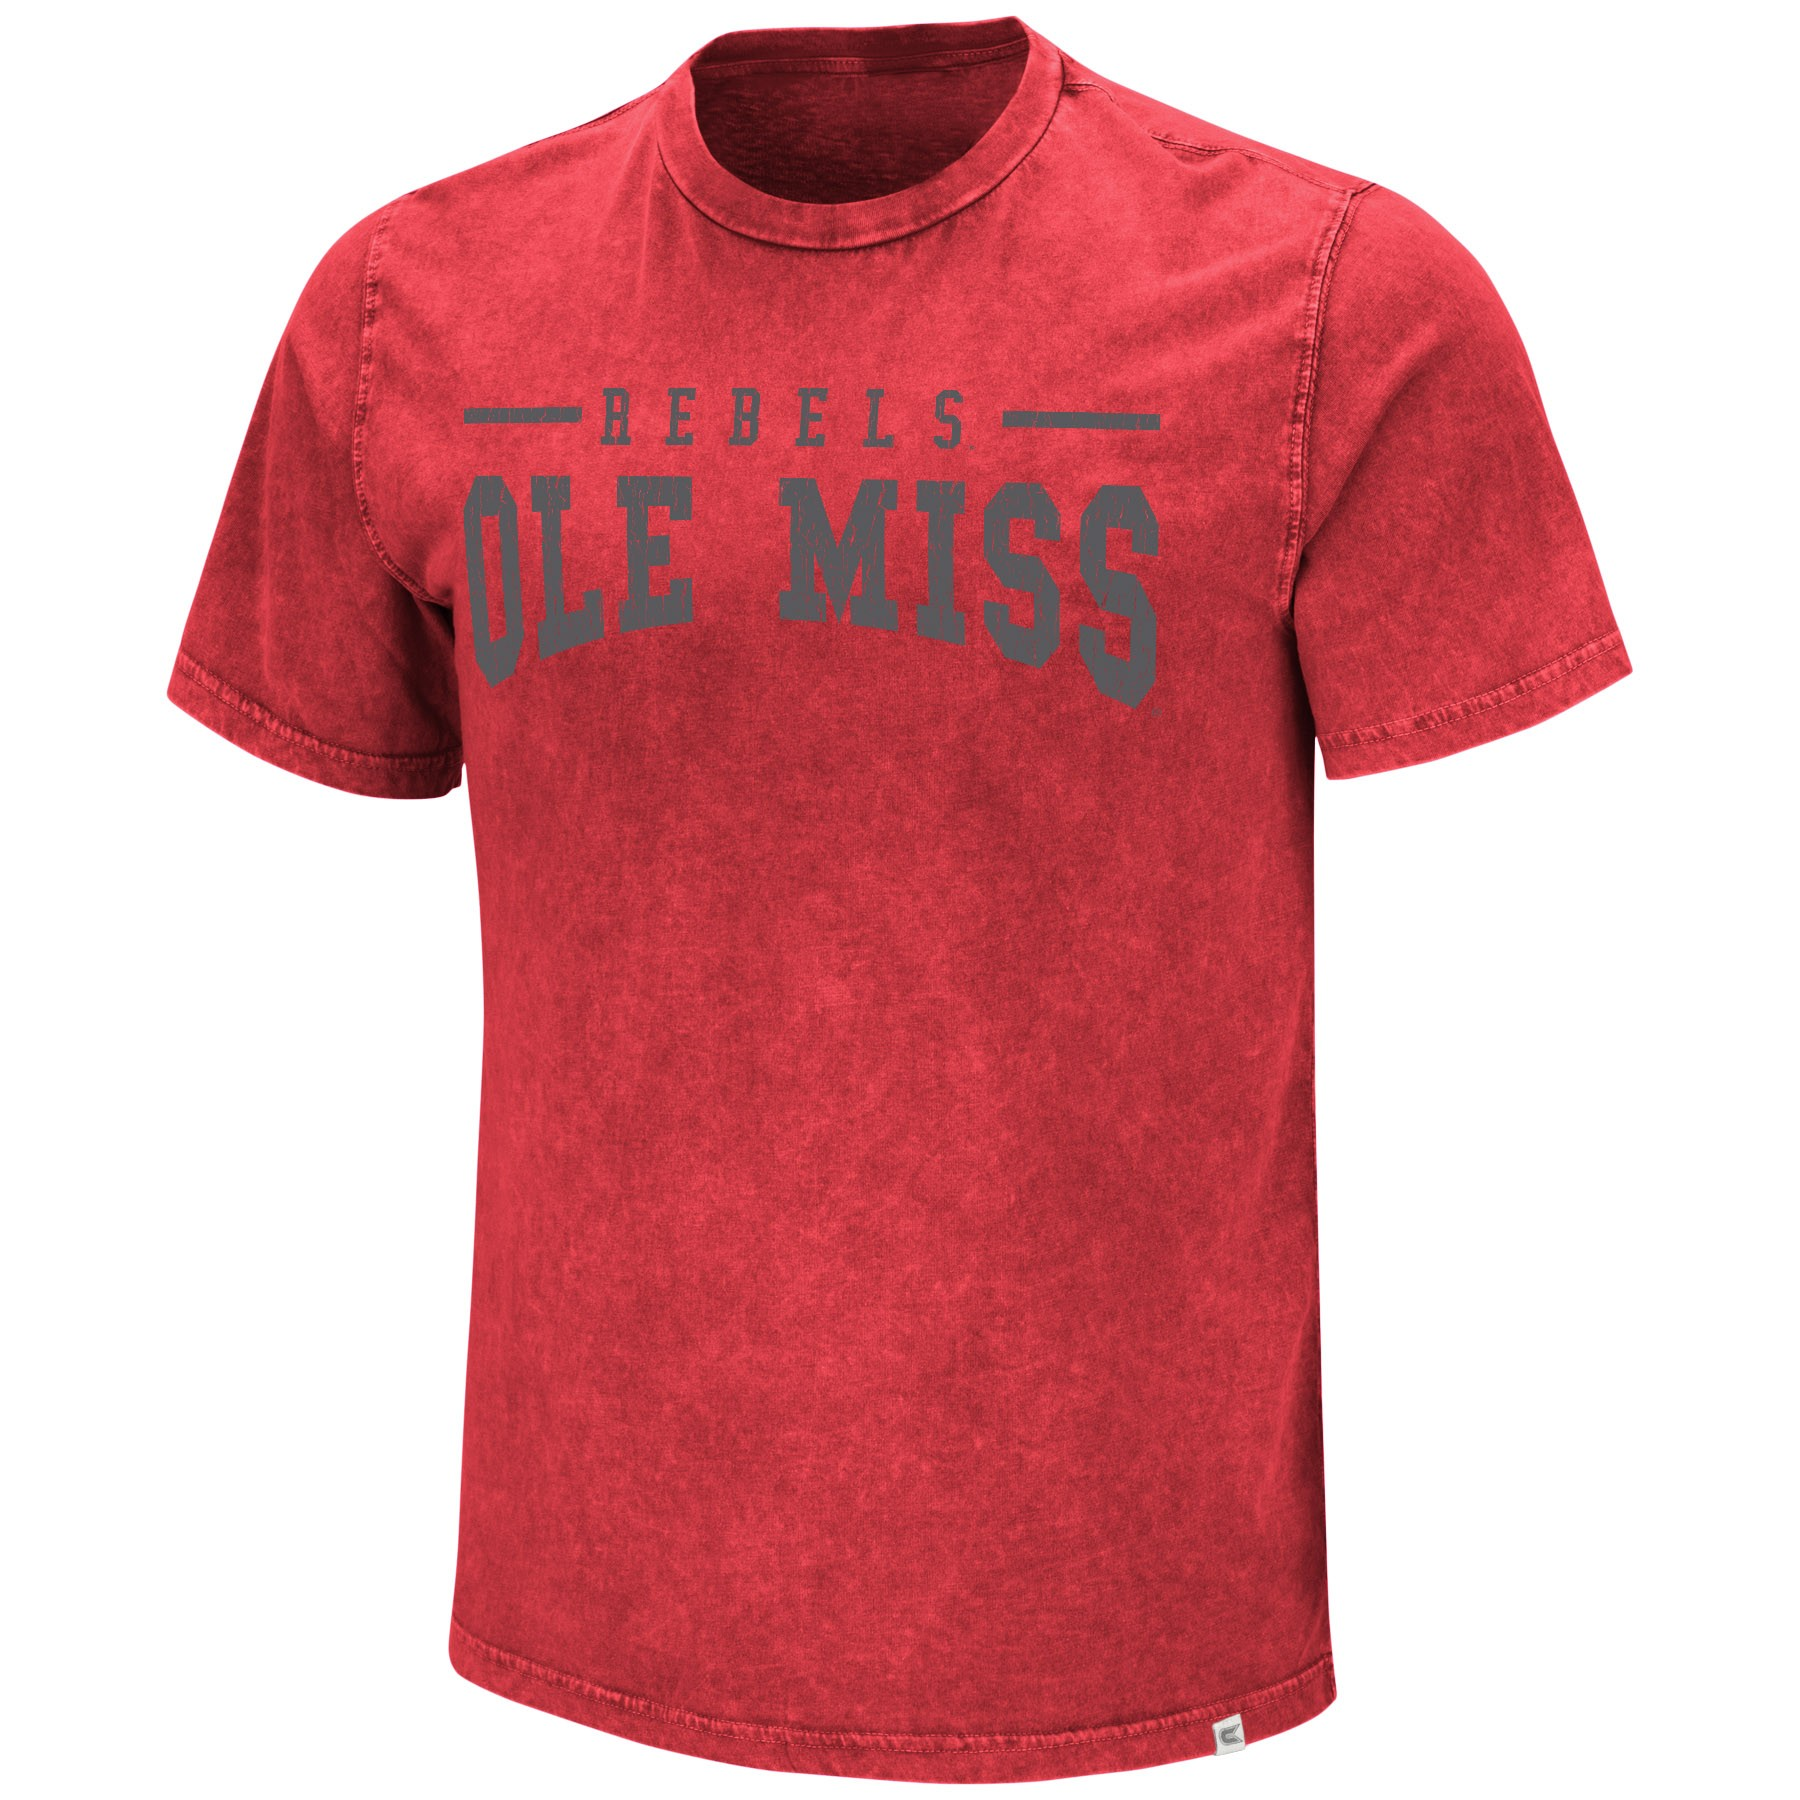 Colosseum Mens Distressed Gray Ink Tee